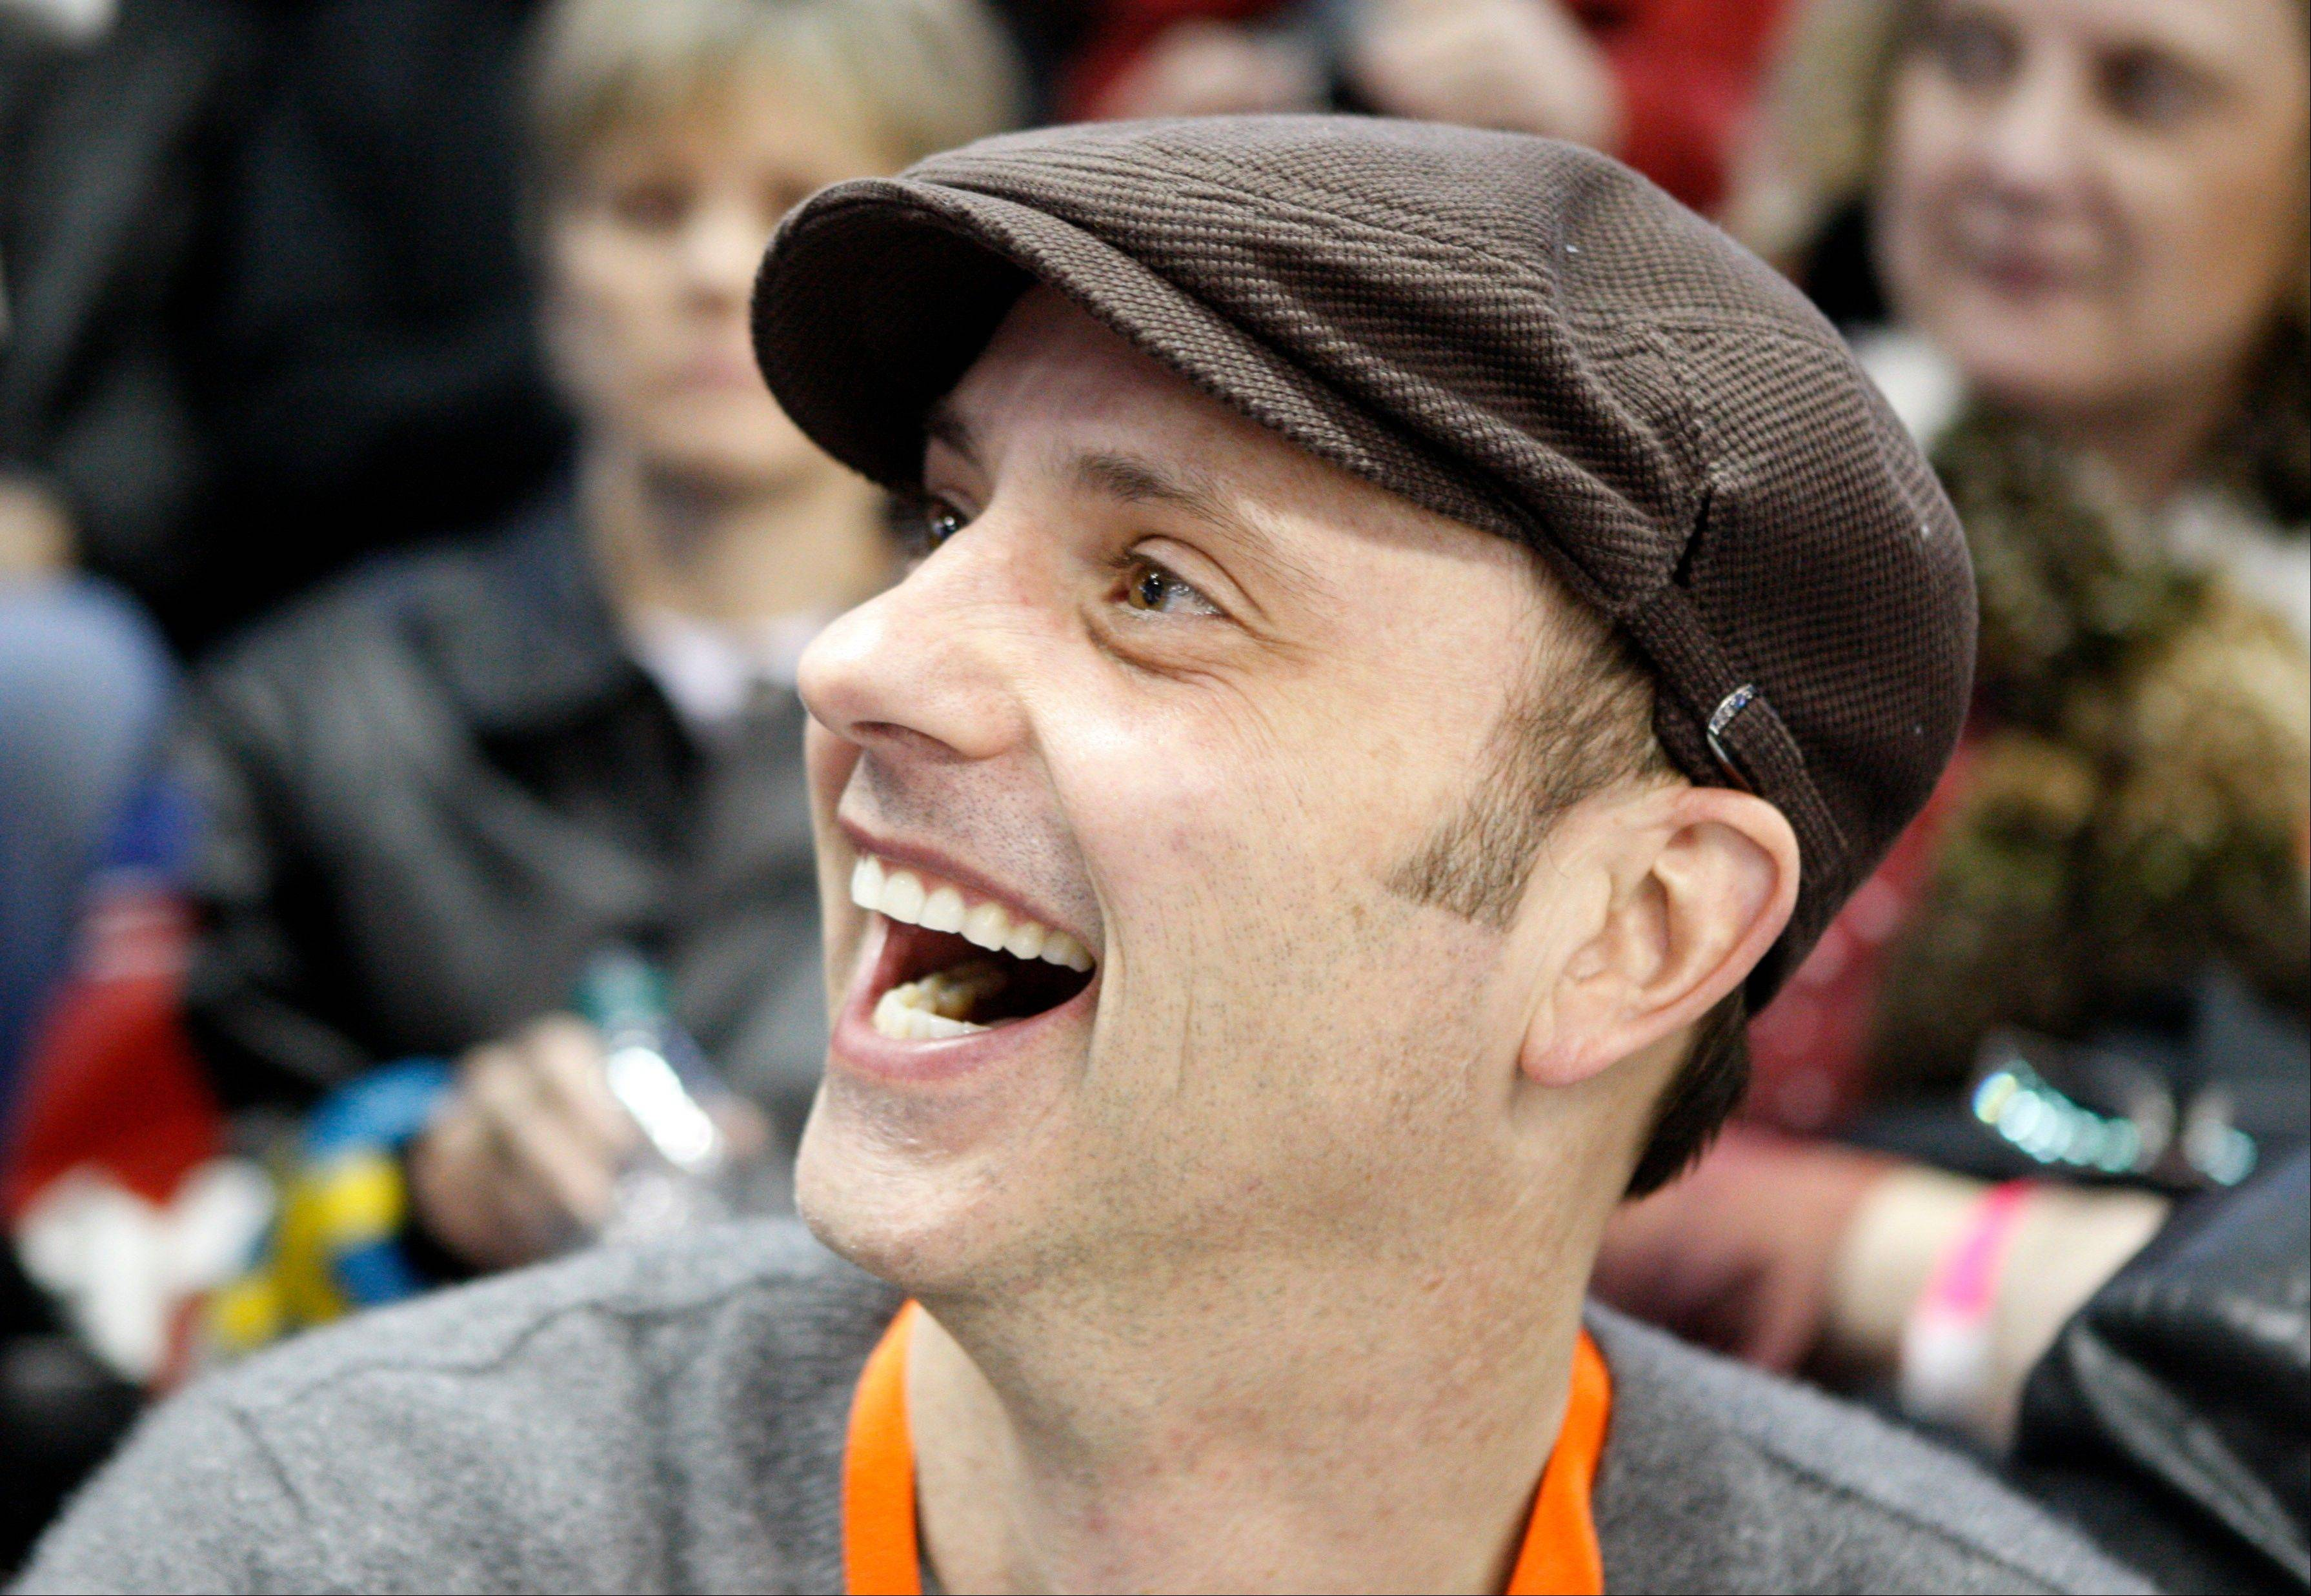 Former Olympian Brian Boitano, two days after being named to the U.S. delegation for Sochi, announced he is gay. But the 1988 gold medalist said Thursday in a statement that �being gay is just one part of who I am. ... I hope we can remain focused on the Olympic spirit which celebrates achievement in sport by peoples of all nations.�